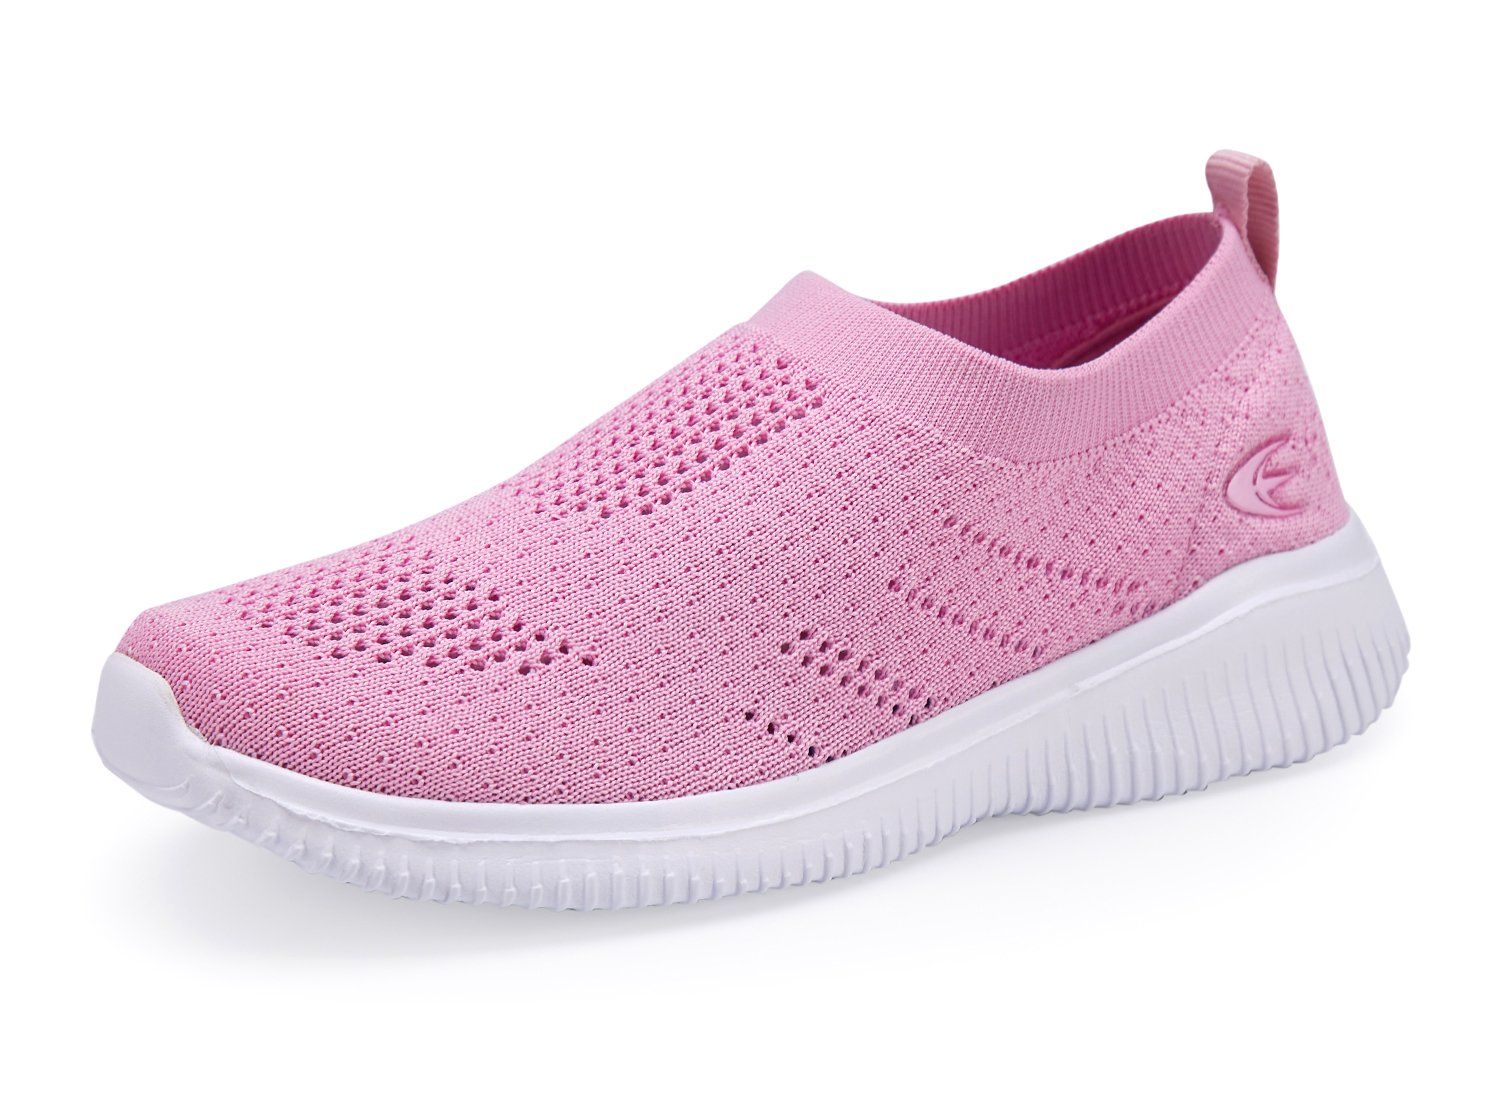 Leader shoes Toddler Little Kid Boys Girls Slip-On Shoes Lightweight Breathable Walking Sneakers (1, Pink)